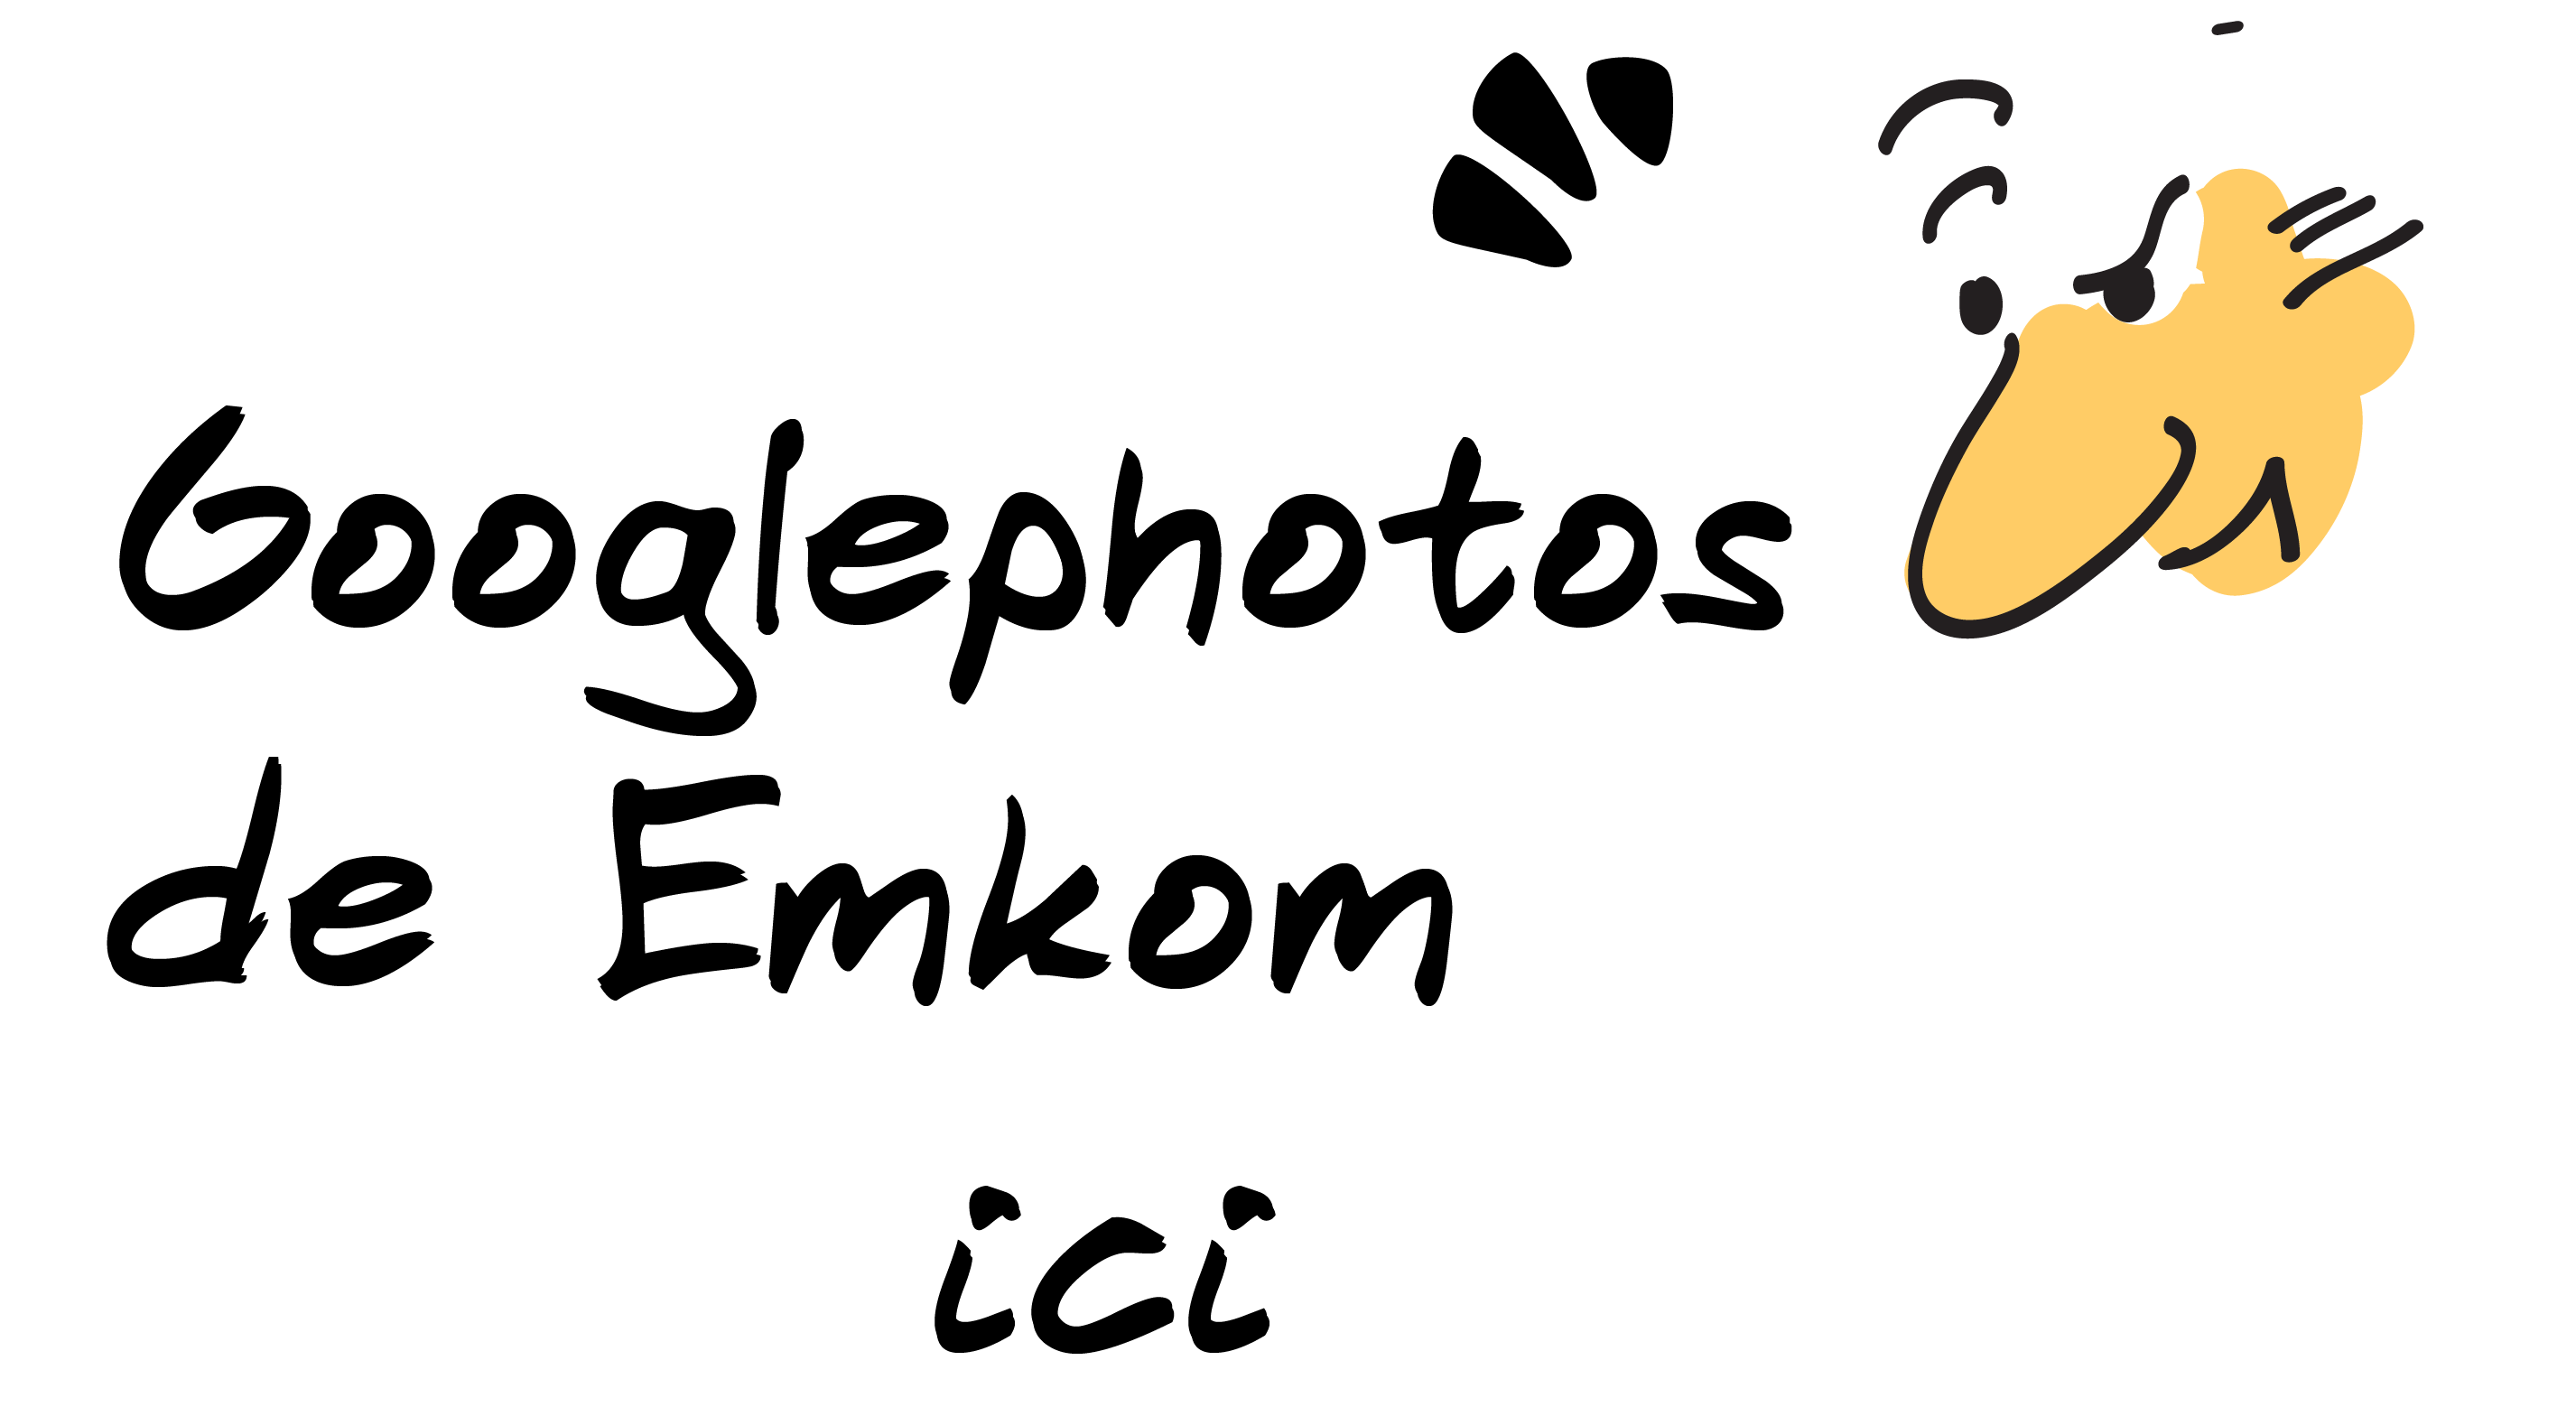 Emkom Google photos